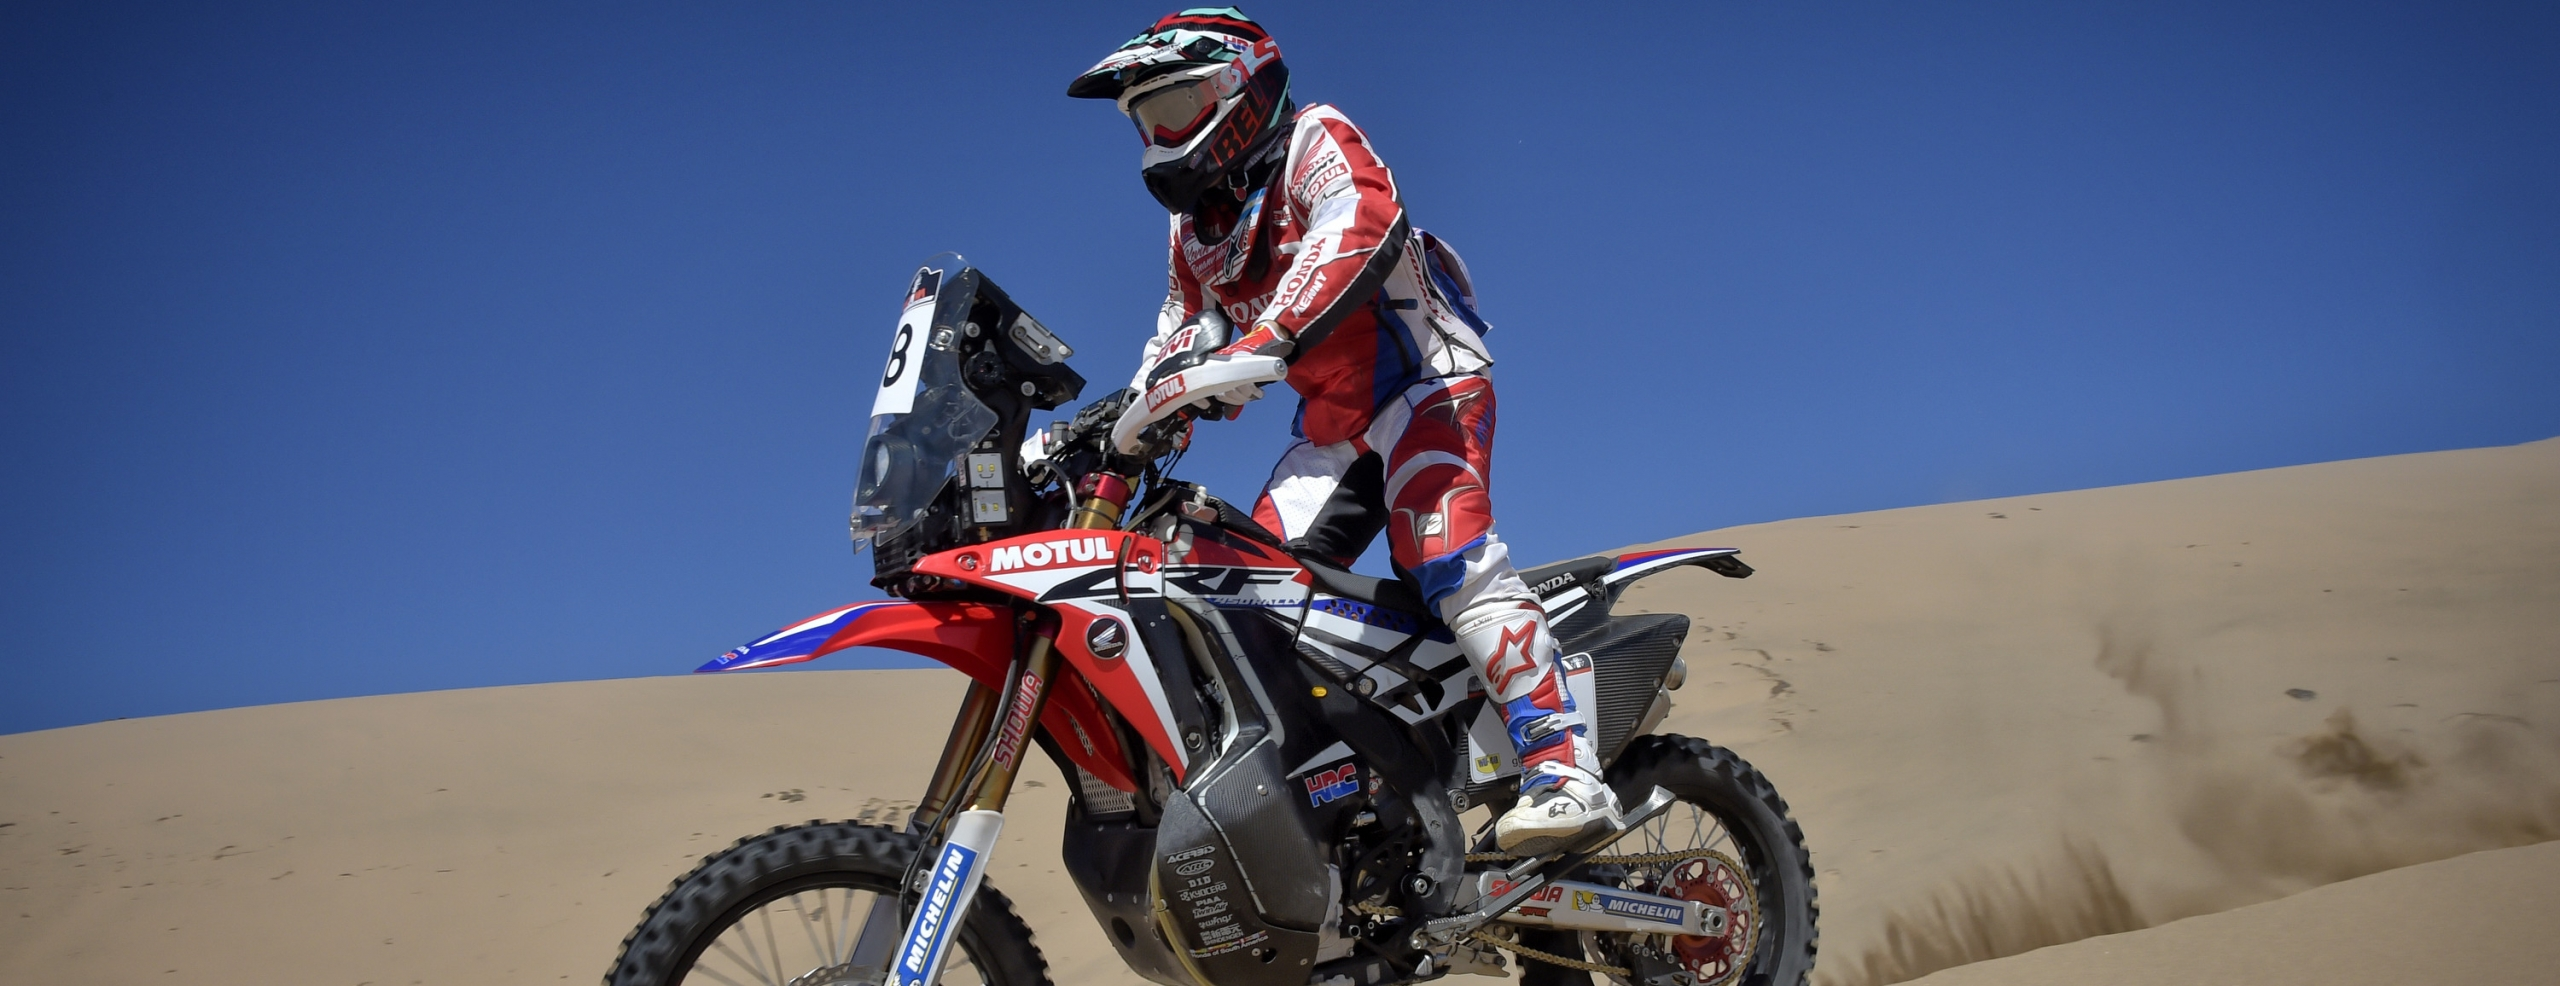 The Atacama Rally finishes with Kevin Benavides on the podium